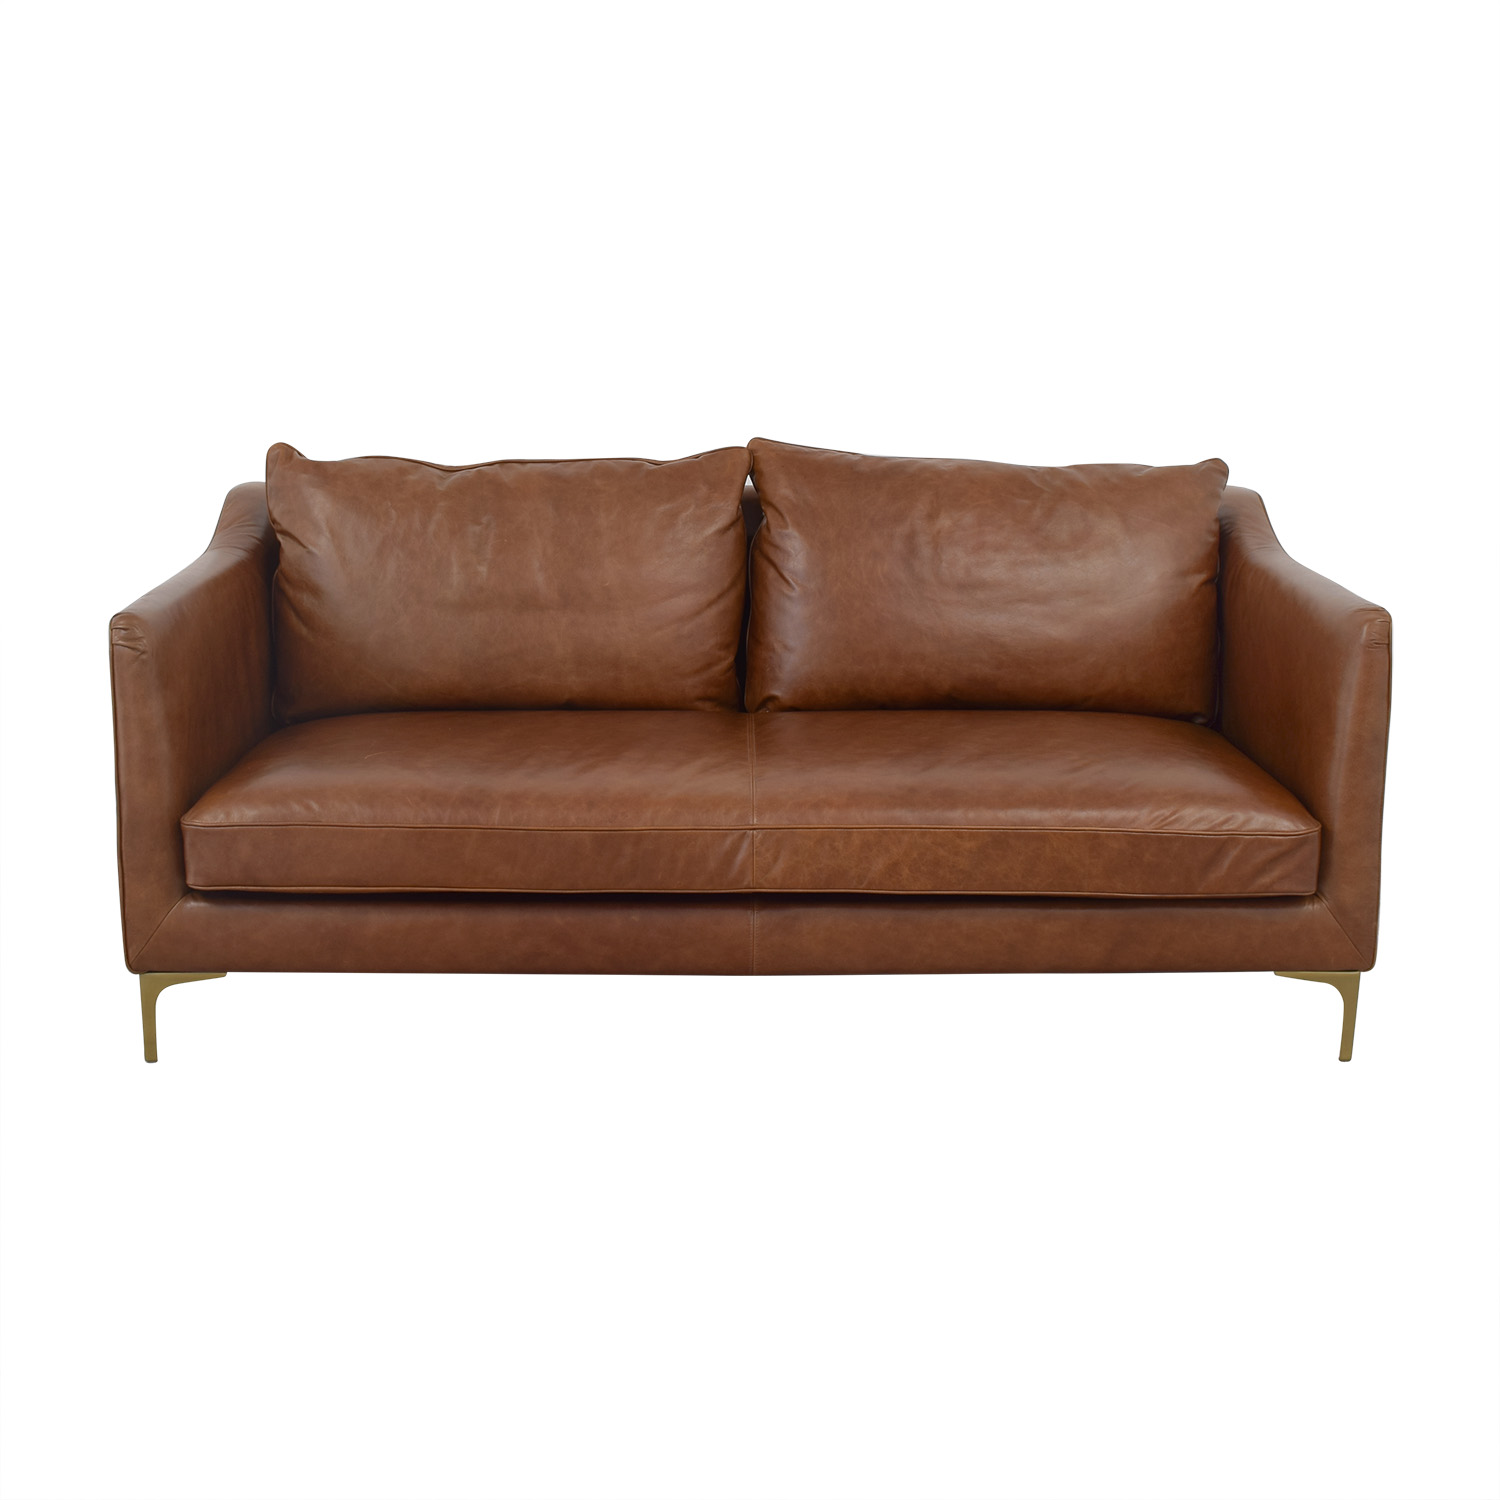 Interior Define Interior Define Caitlin Single Cushion Sofa Sofas